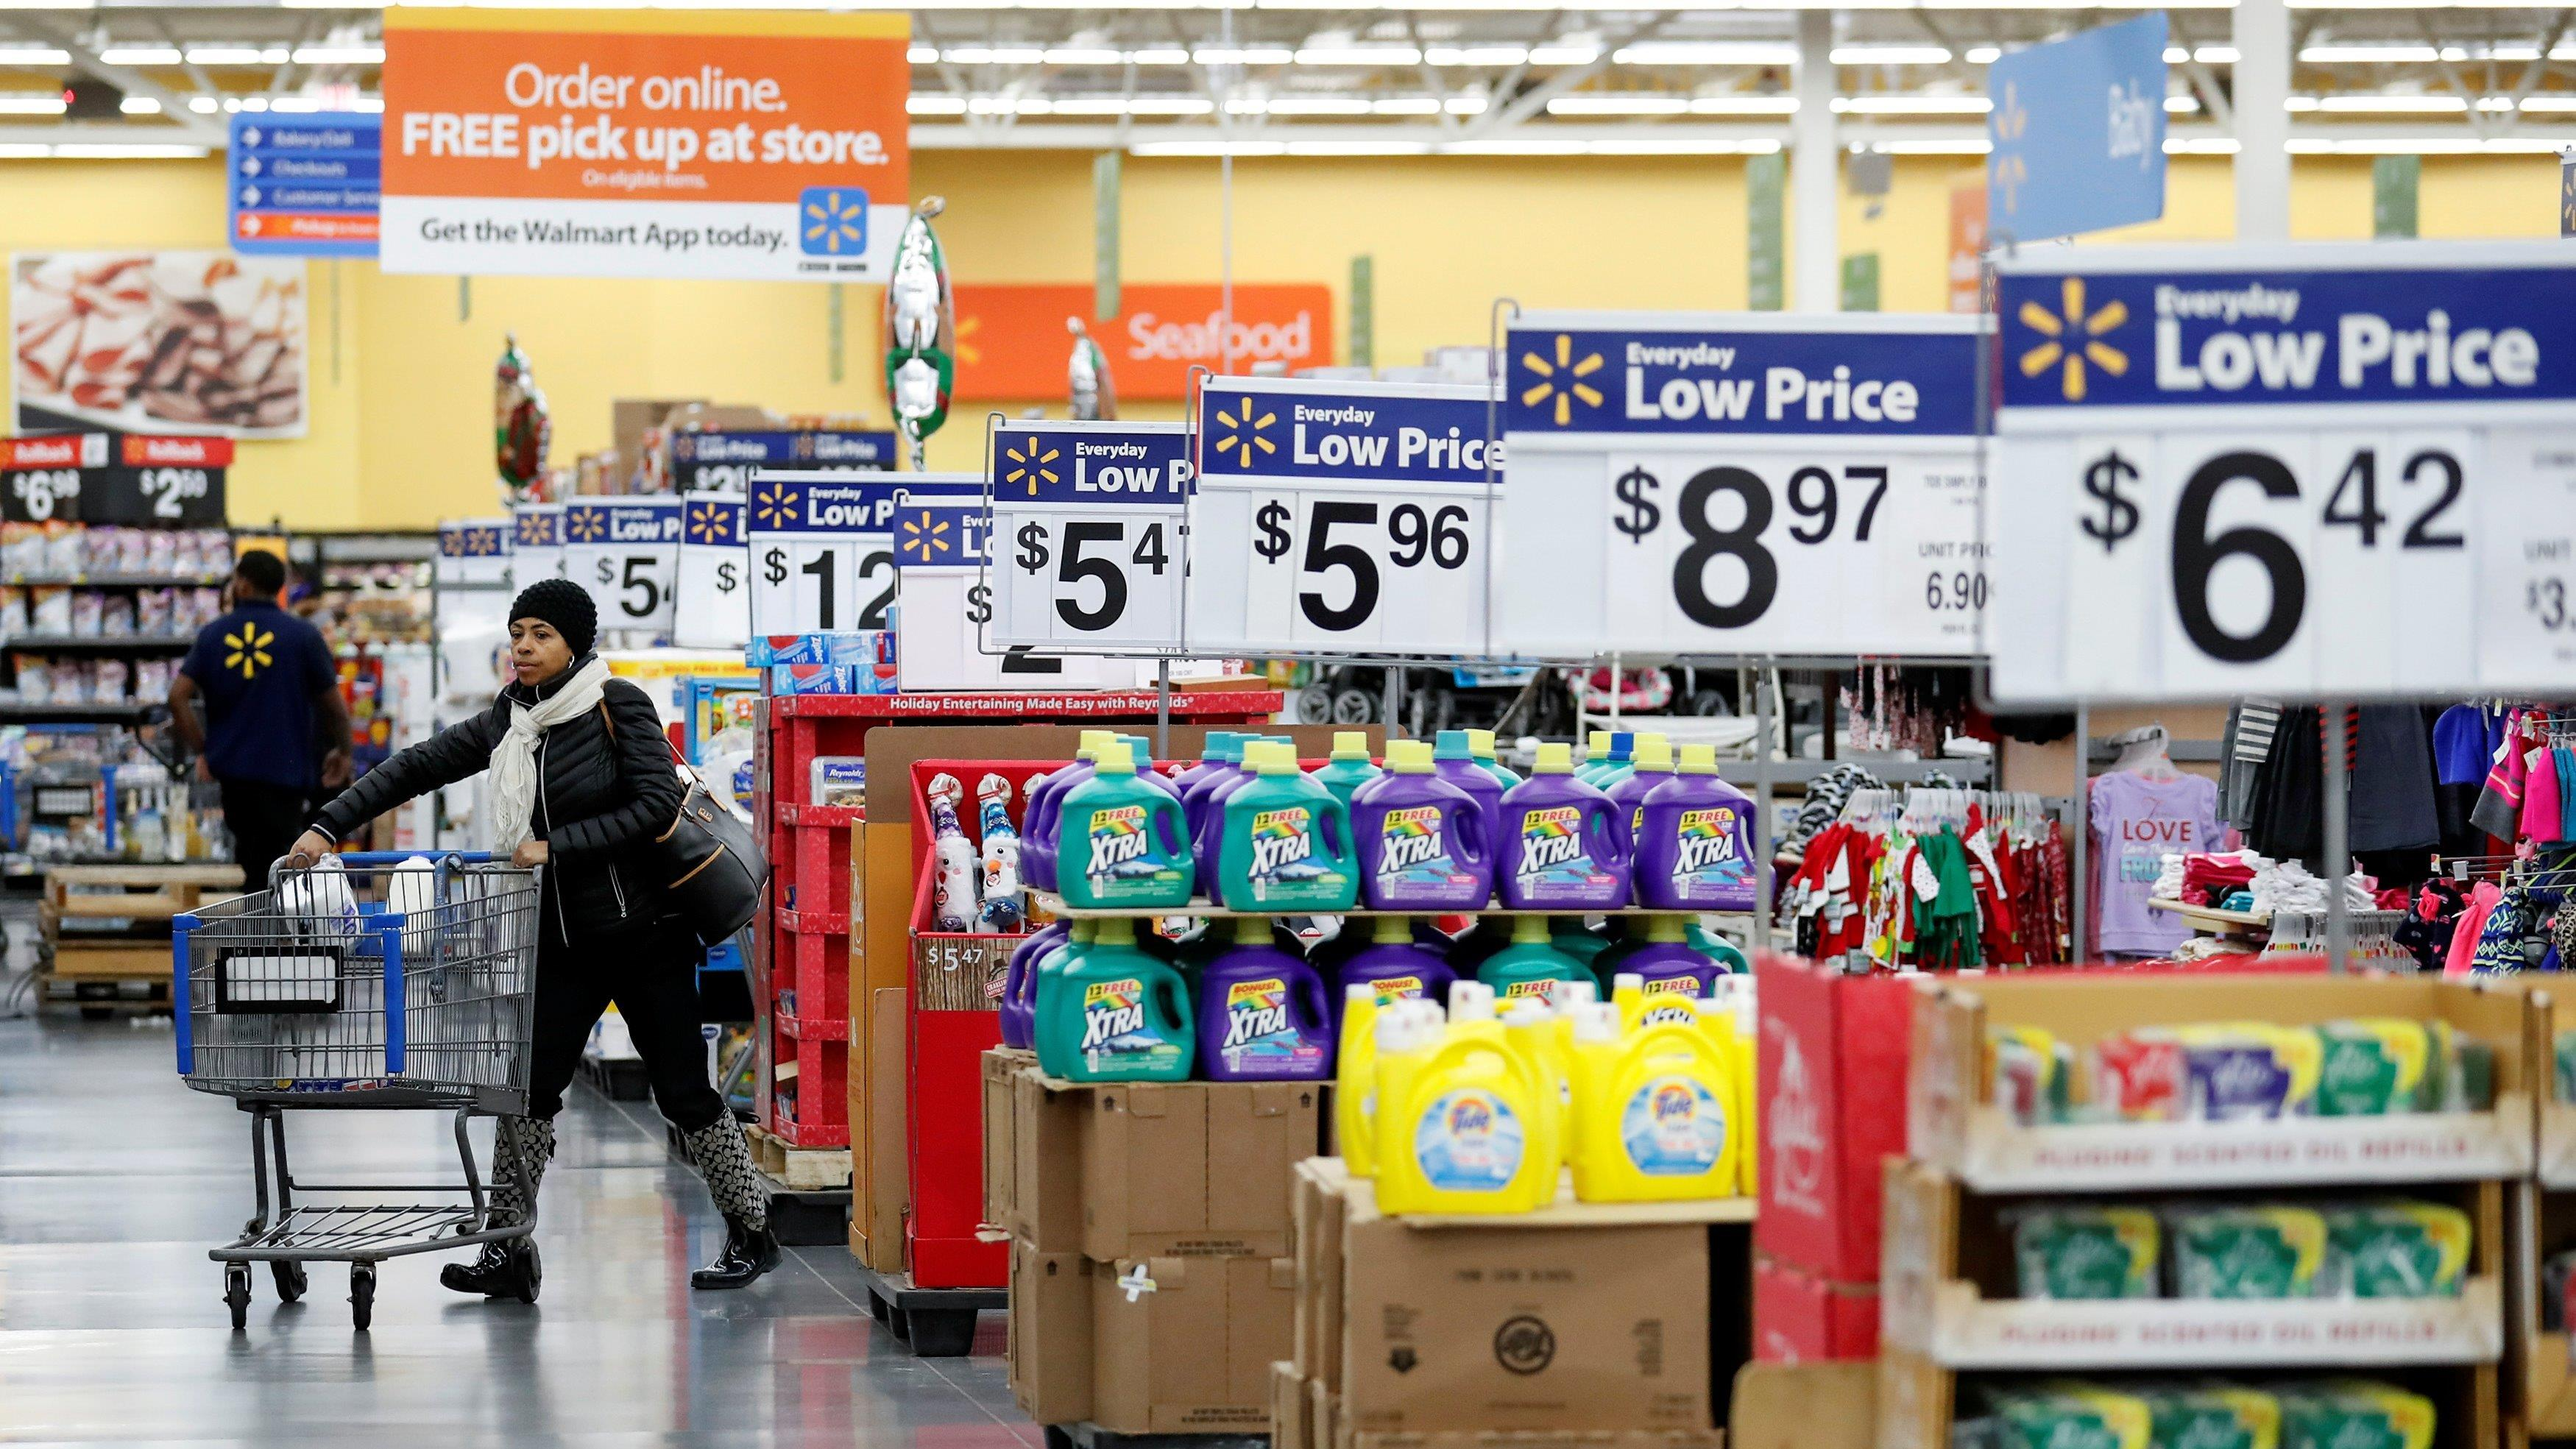 Former Wal-Mart U.S. CEO Bill Simon says technology is driving a transition in retail.